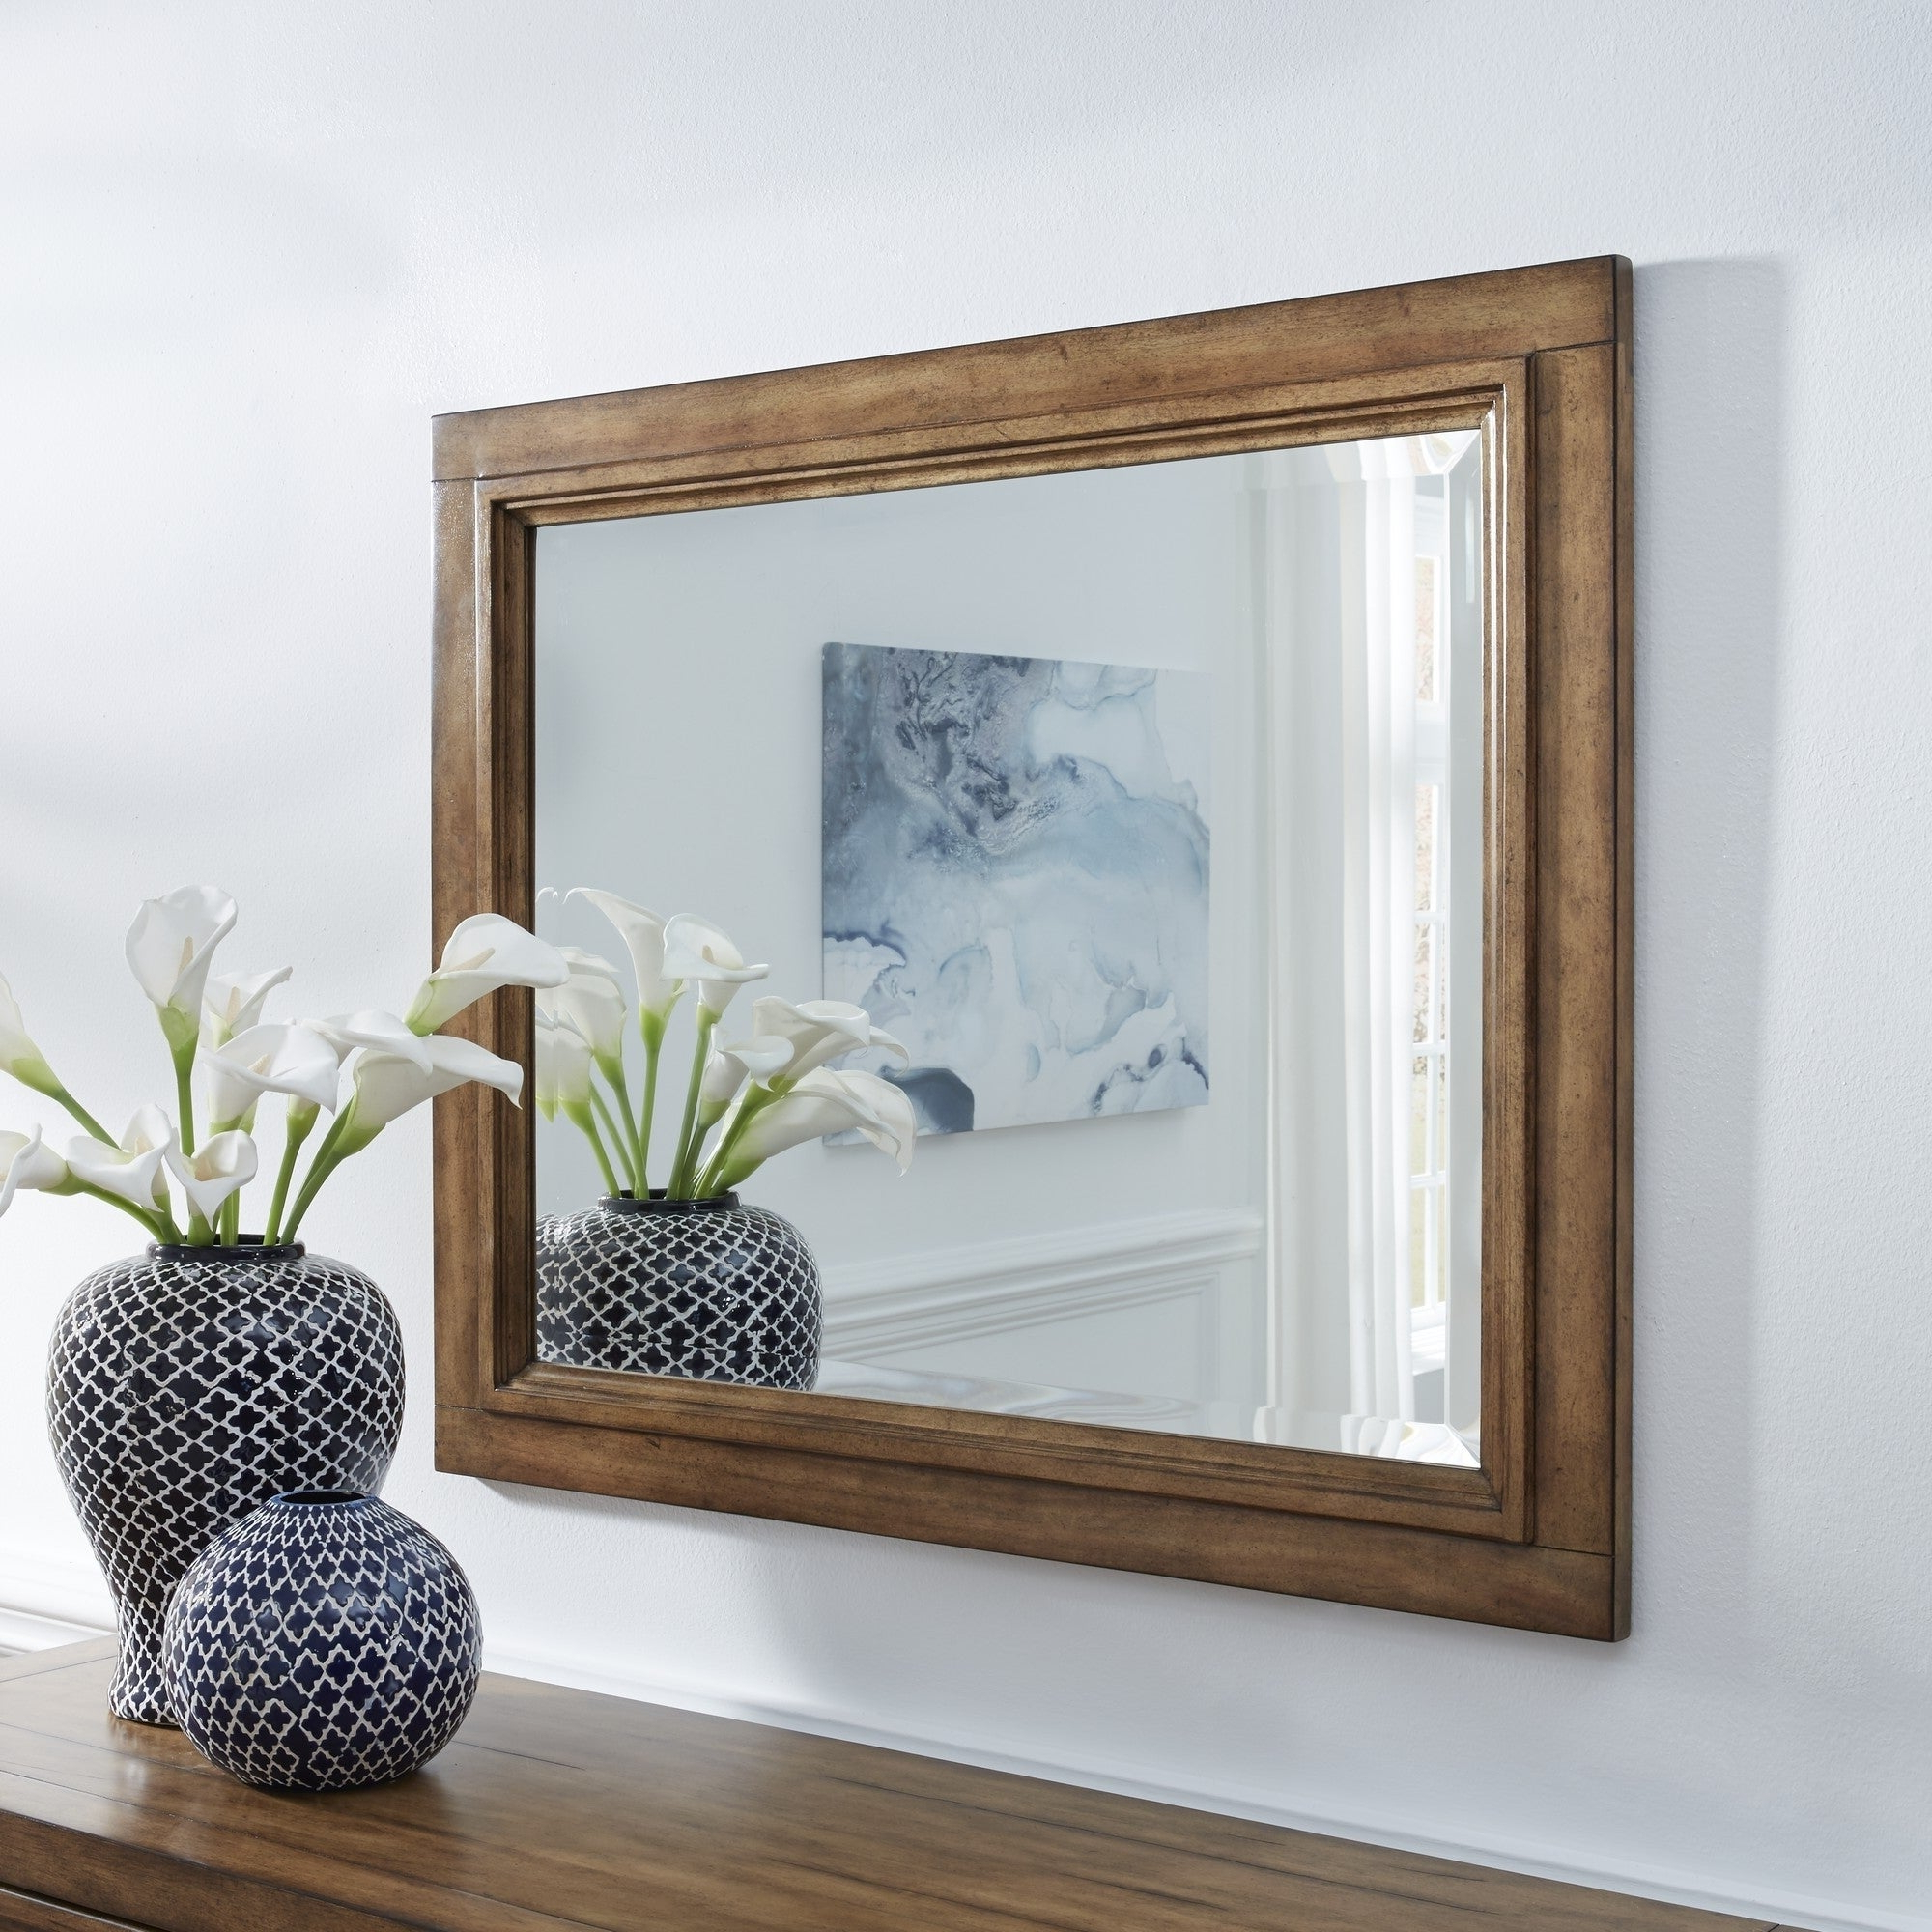 Most Recently Released Carbon Loft Wallace Wood Framed Landscape Wall Mirror Inside Landscape Wall Mirrors (View 3 of 20)